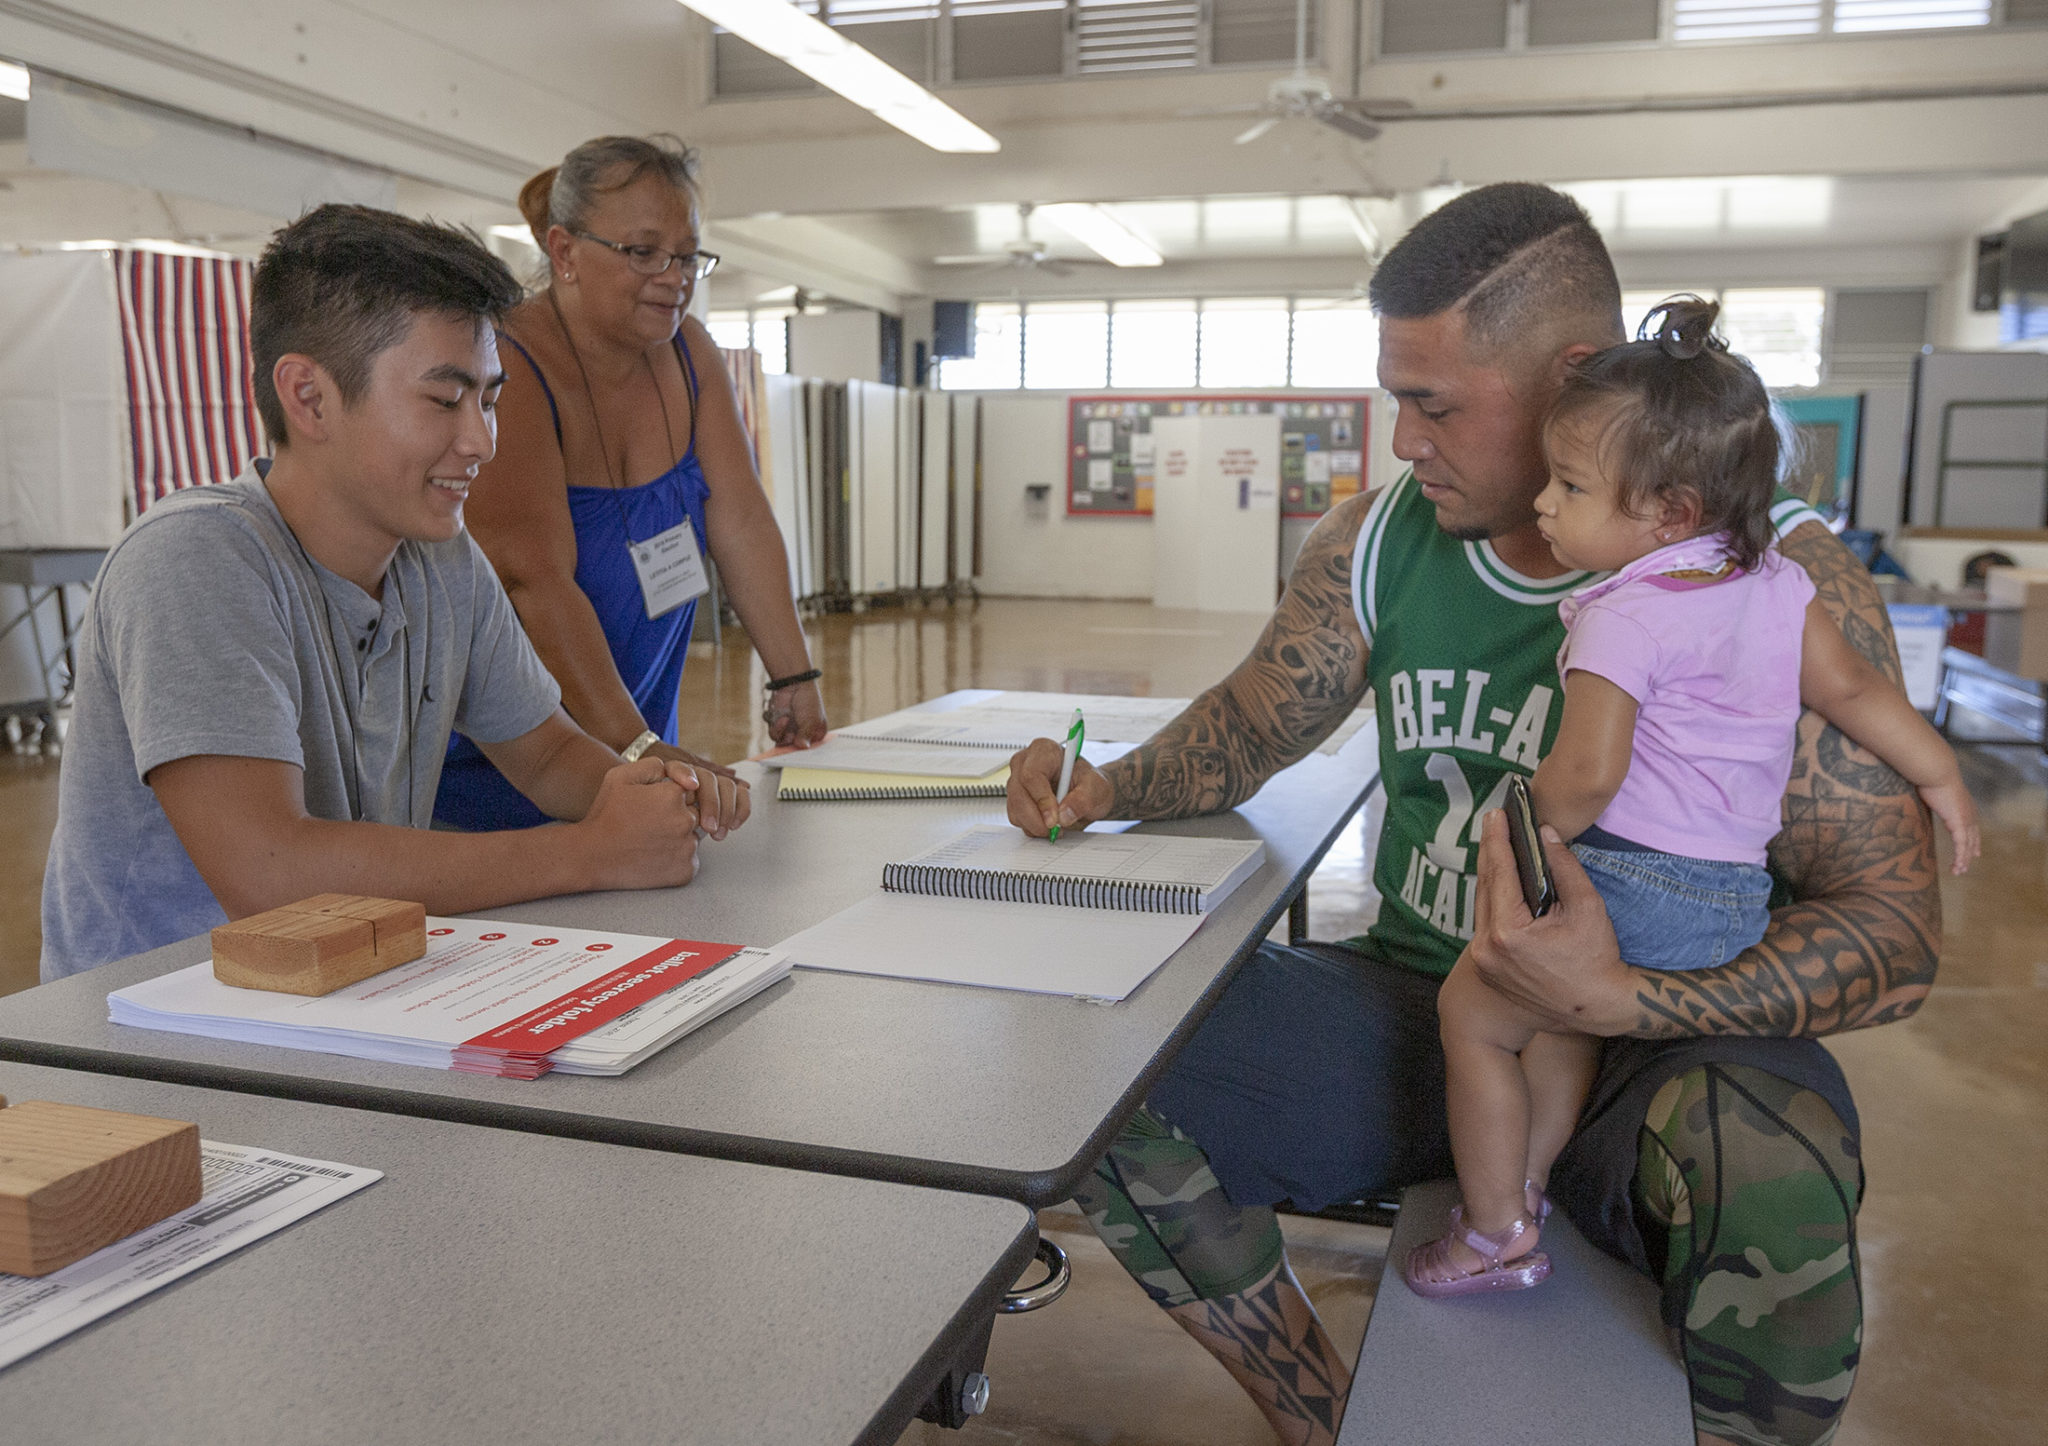 <p>Voter precinct volunteers Tyler Maruno, left, and Letitia Corpuz help Matt Coleman, holding his daughter Natalee, sign in before voting at Lanakila Elementary School.</p>